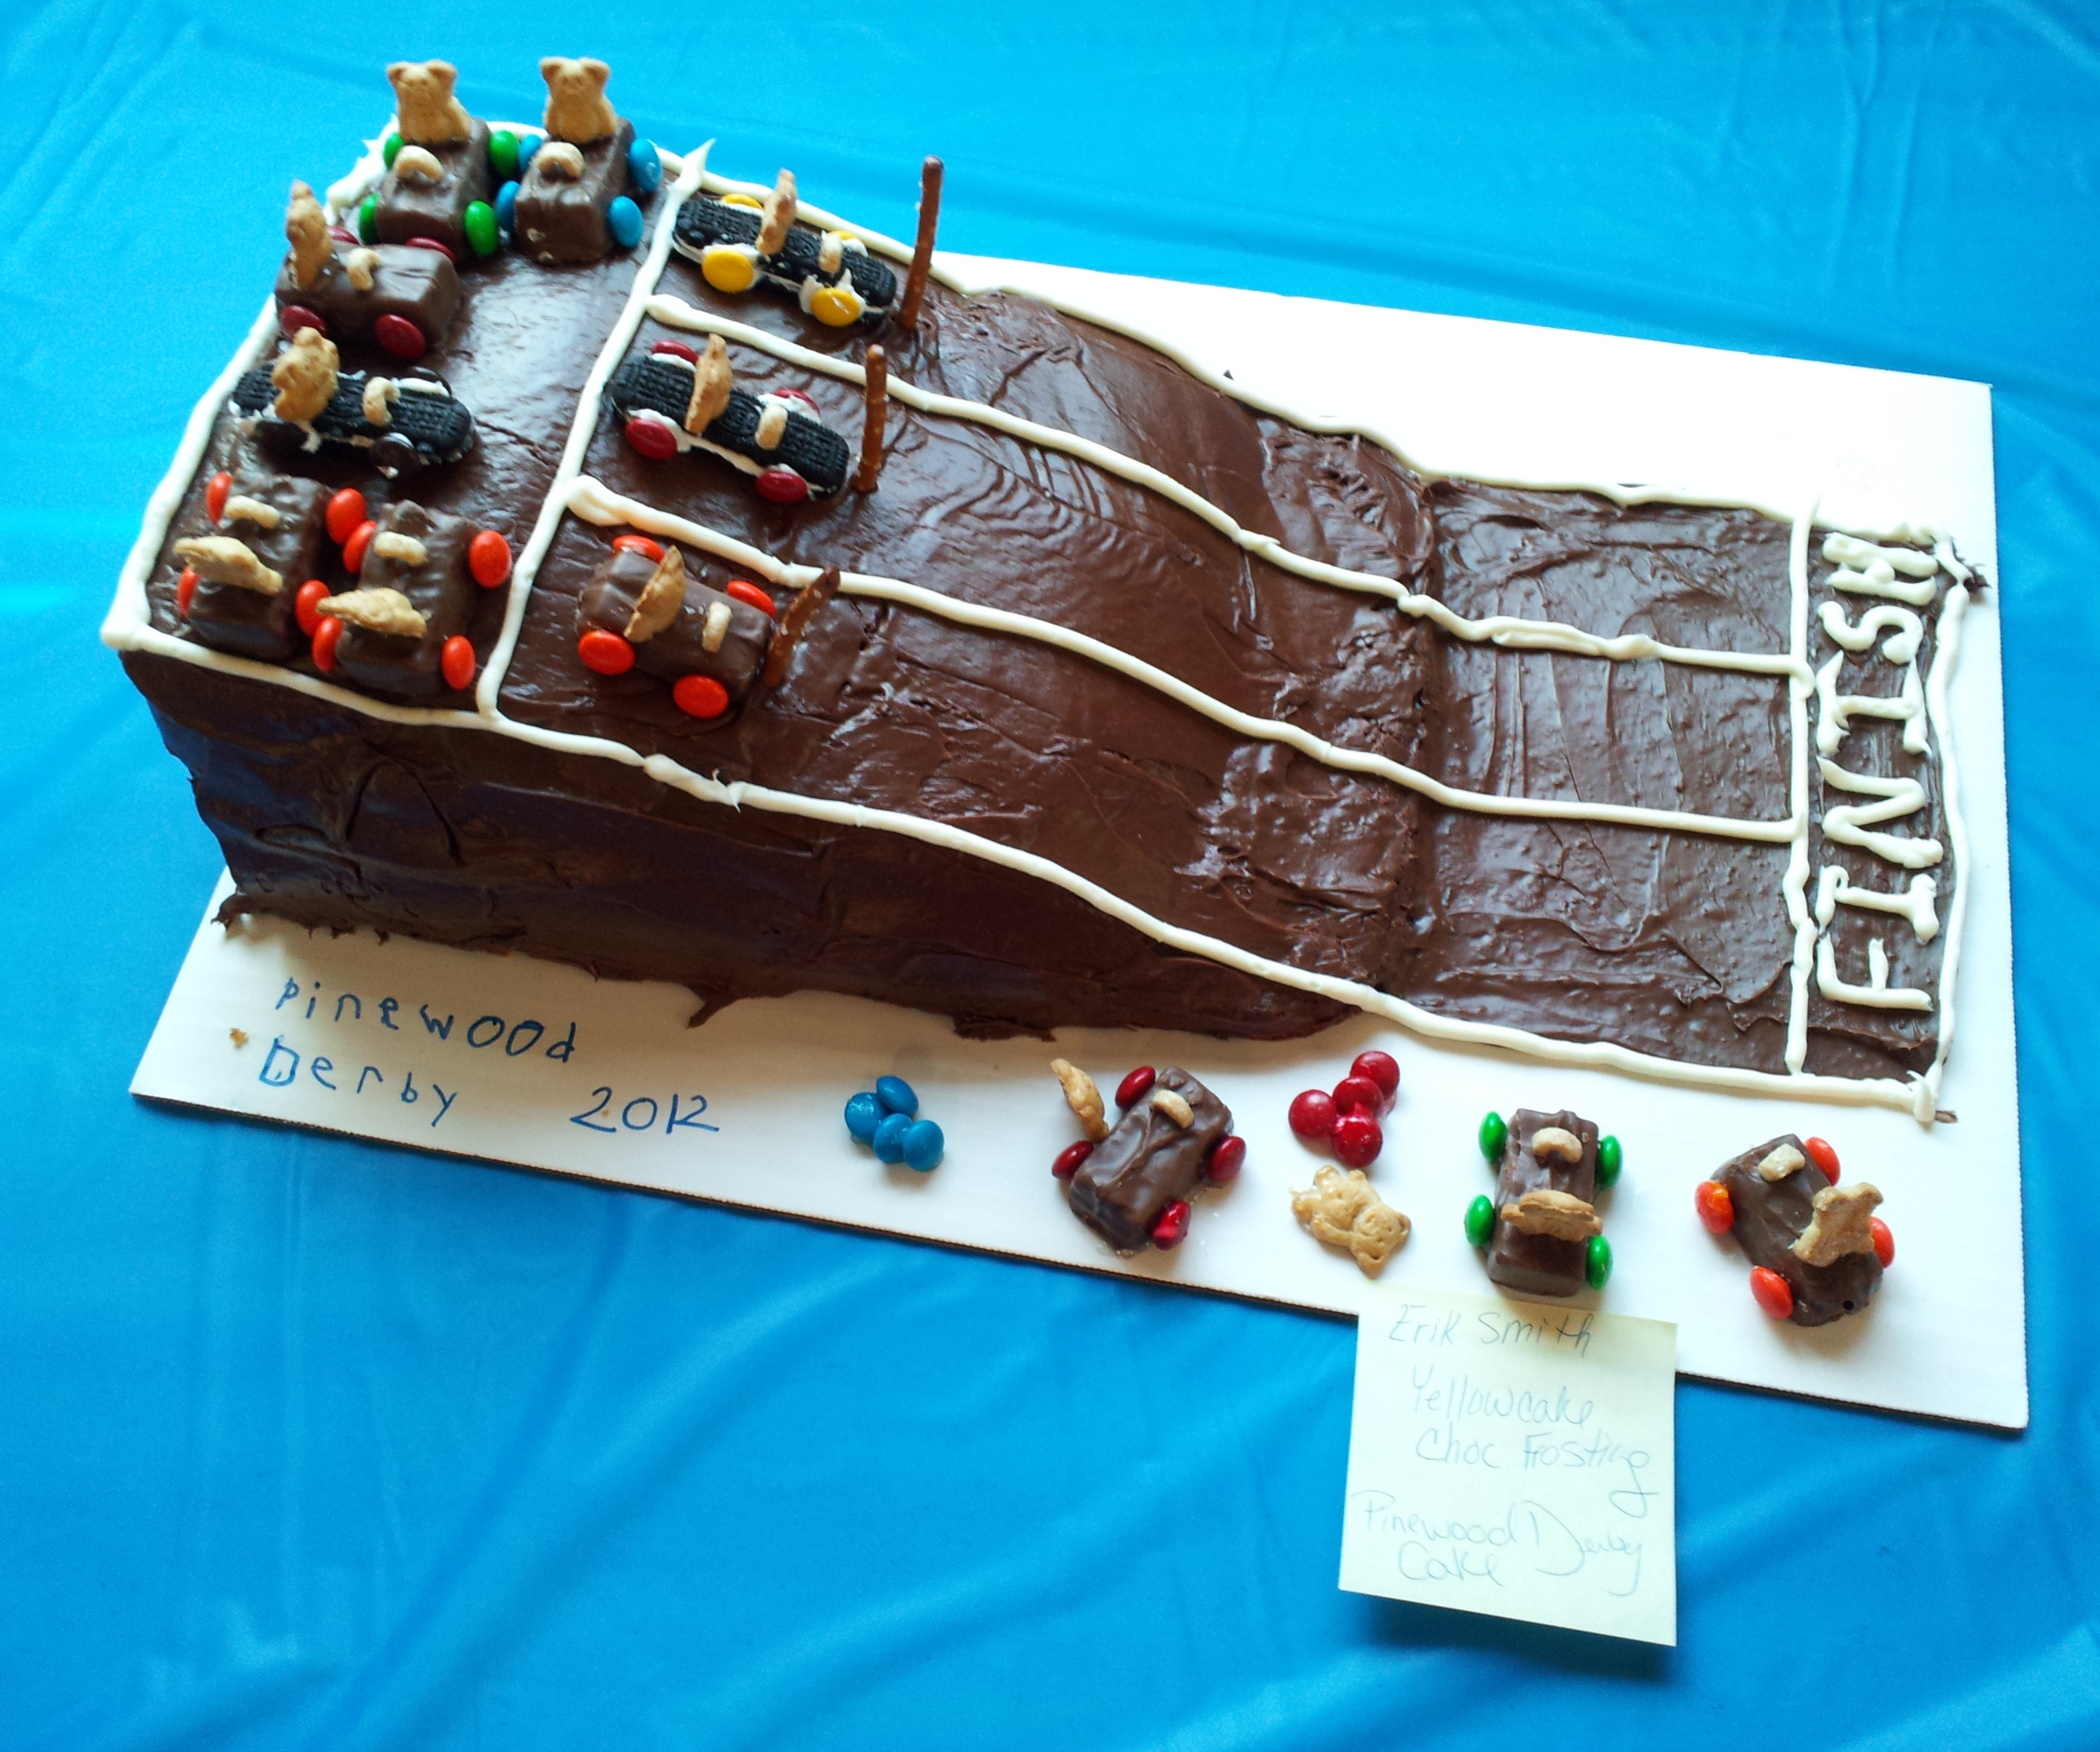 Cub Scout Cake Bake Rules